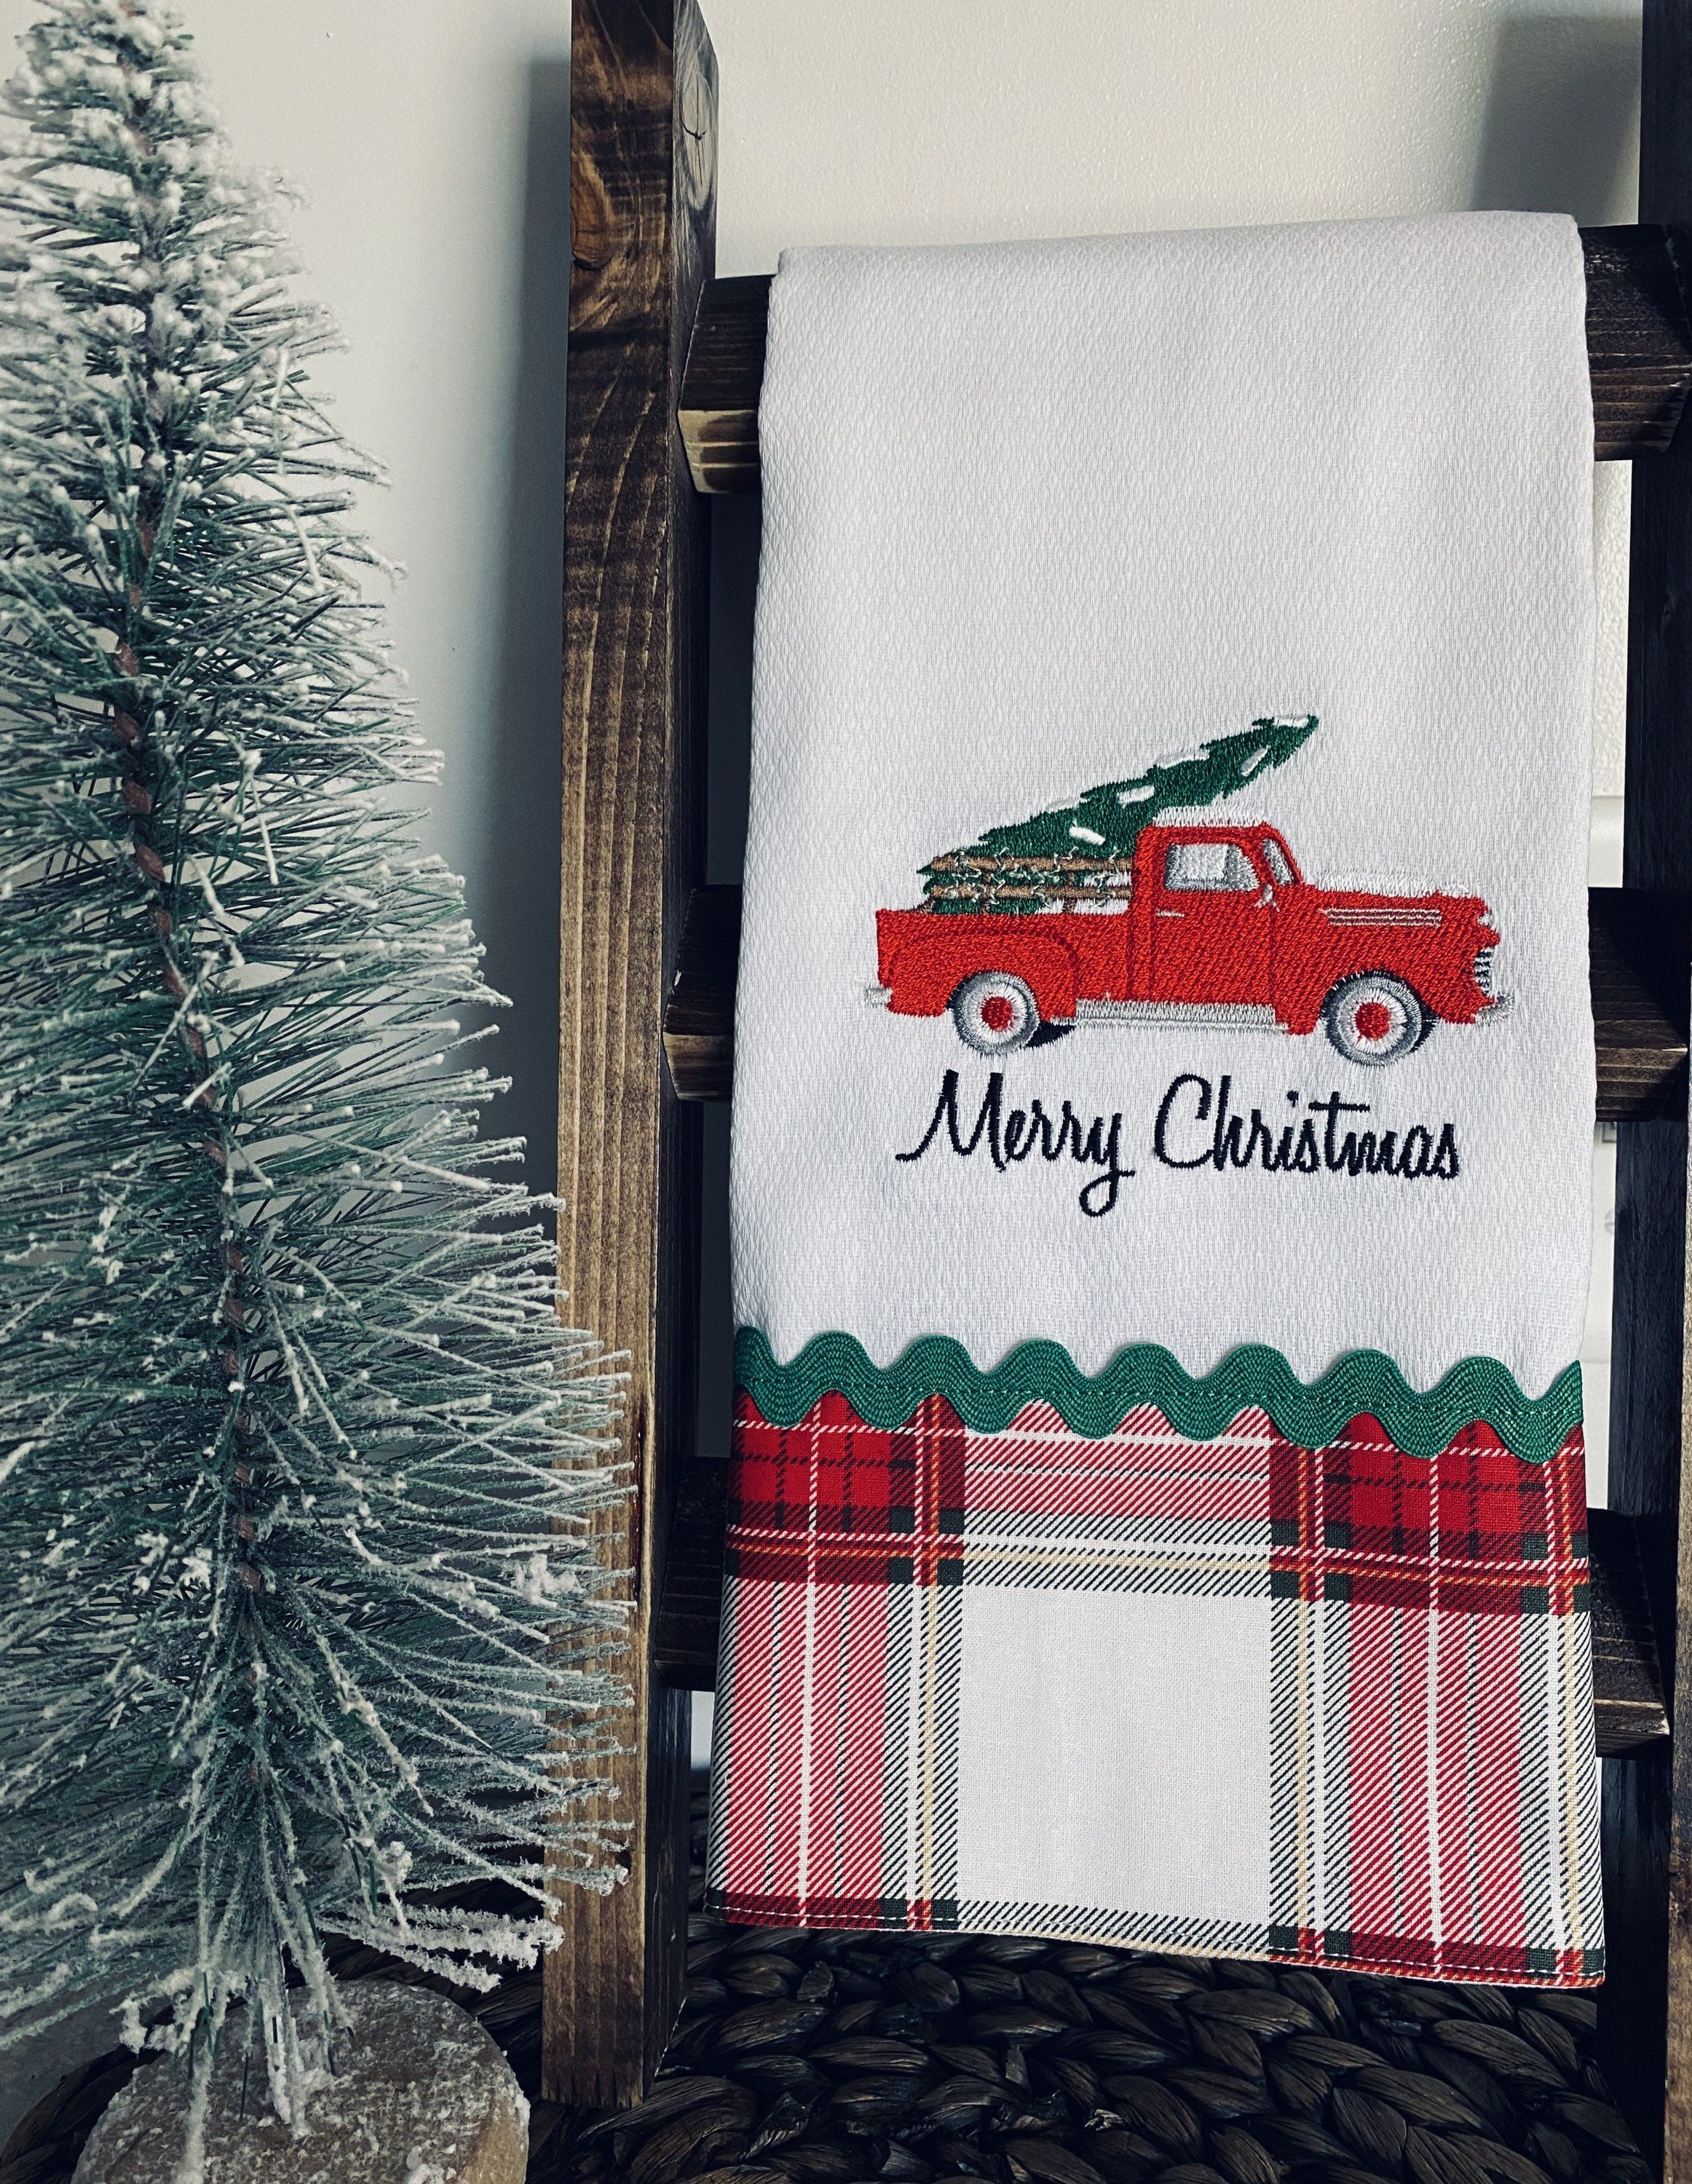 Excited to share the latest addition to my #etsy shop: Red Truck with Christmas Plaid Kitchen Towel #christmas #redtruck #coffeebar #tieredtraydecor #christmasplaid